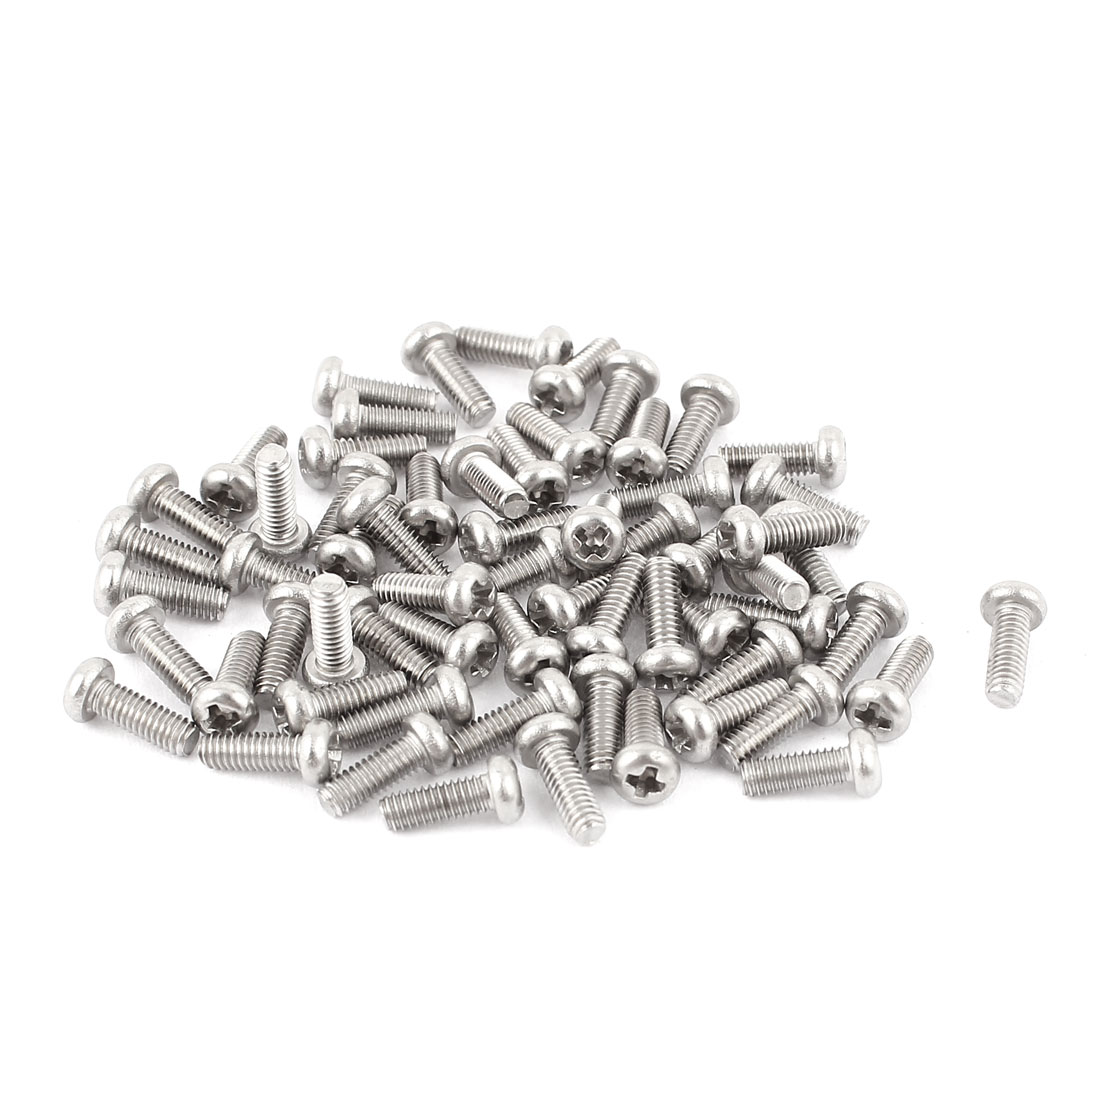 M2.5 x 7mm 304 Stainless Steel Crosshead Phillips Round Head Screws Bolt 60pcs